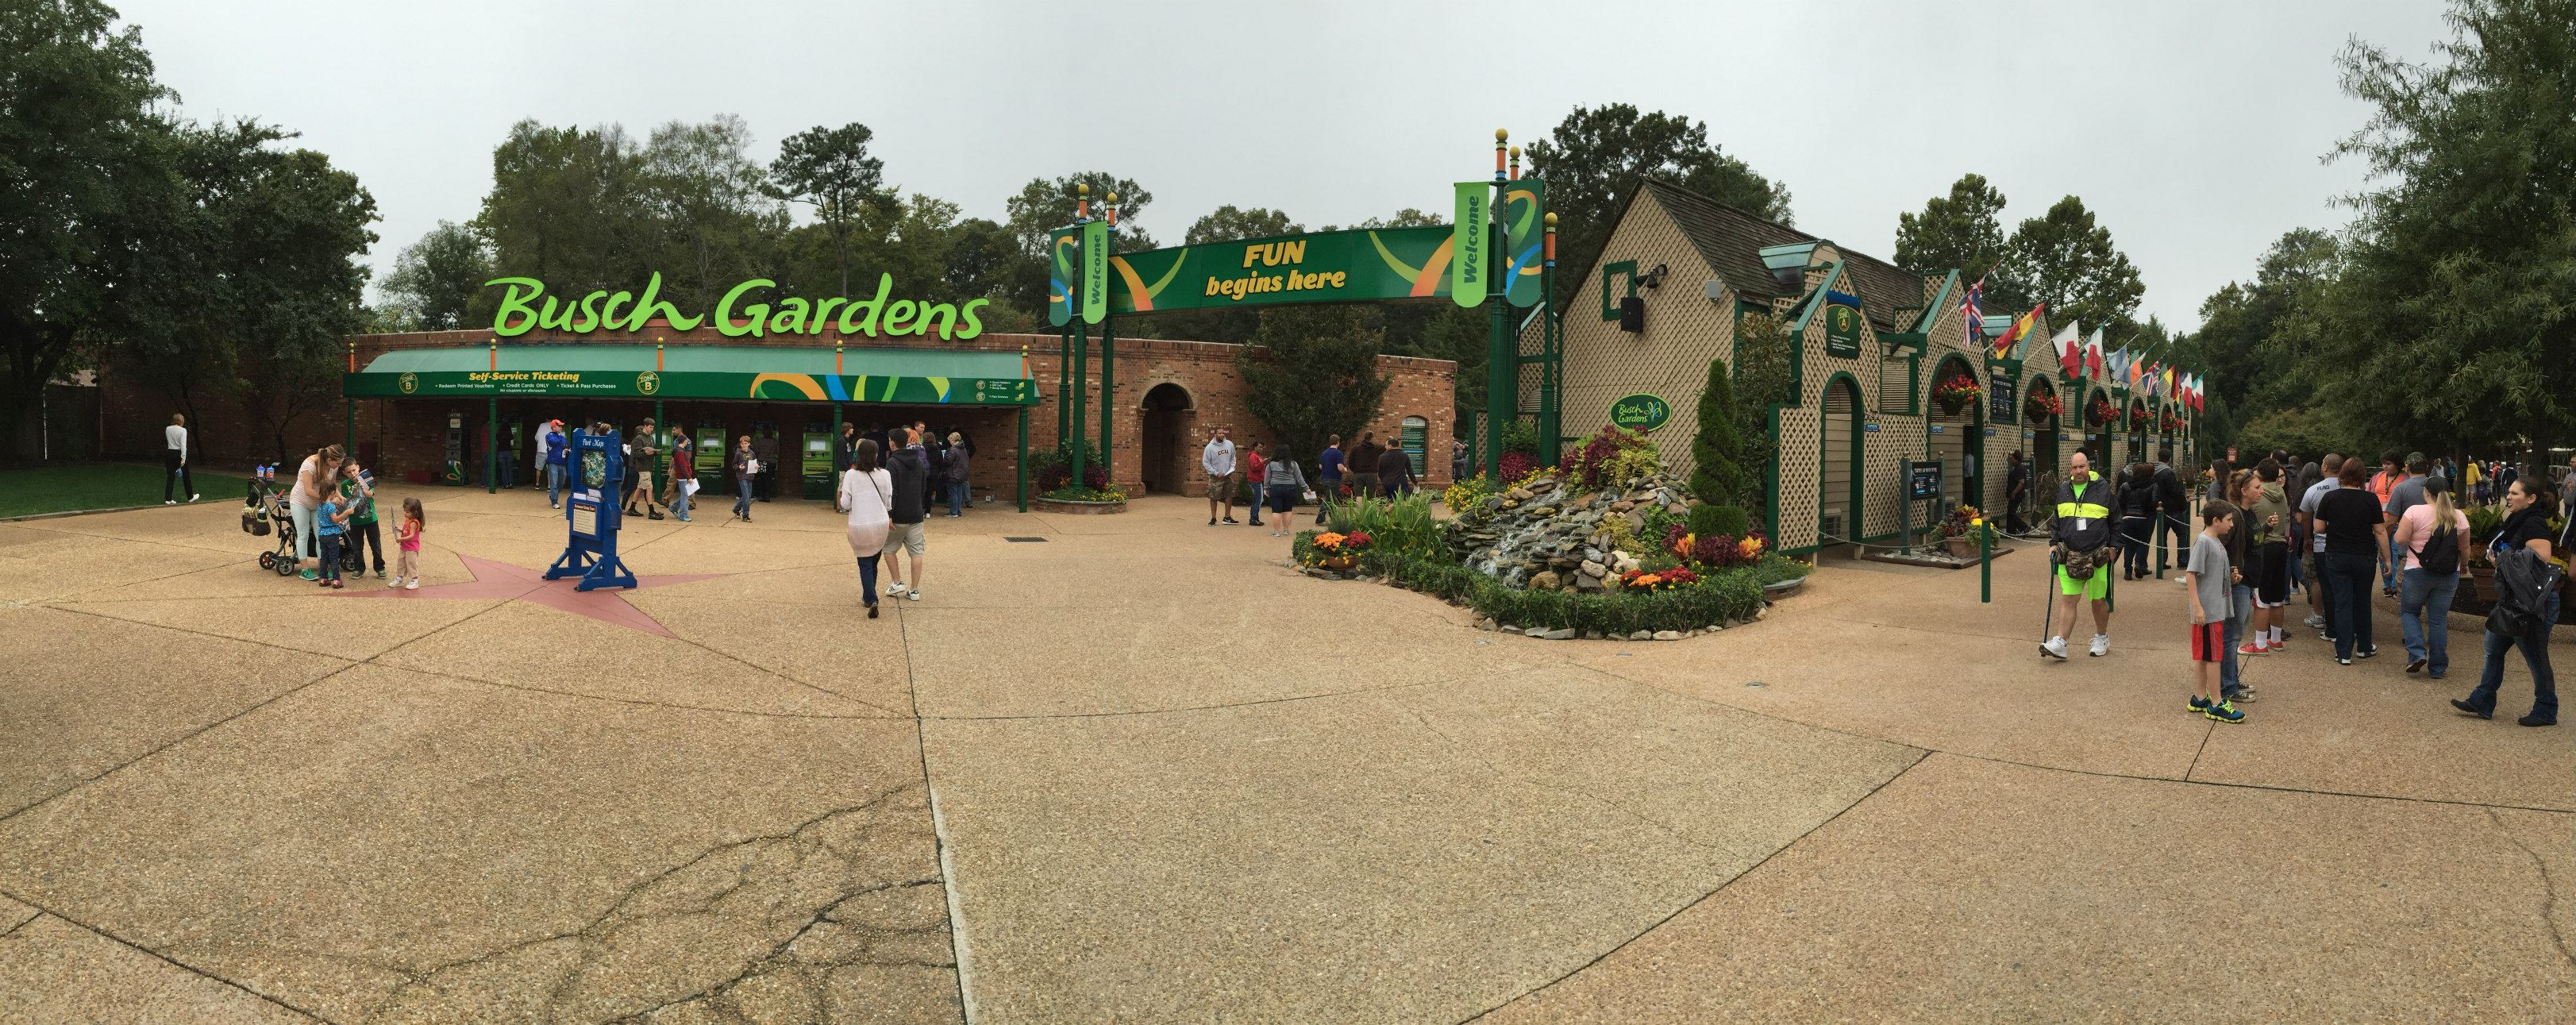 Image Result For Bus To Busch Gardens Tampa